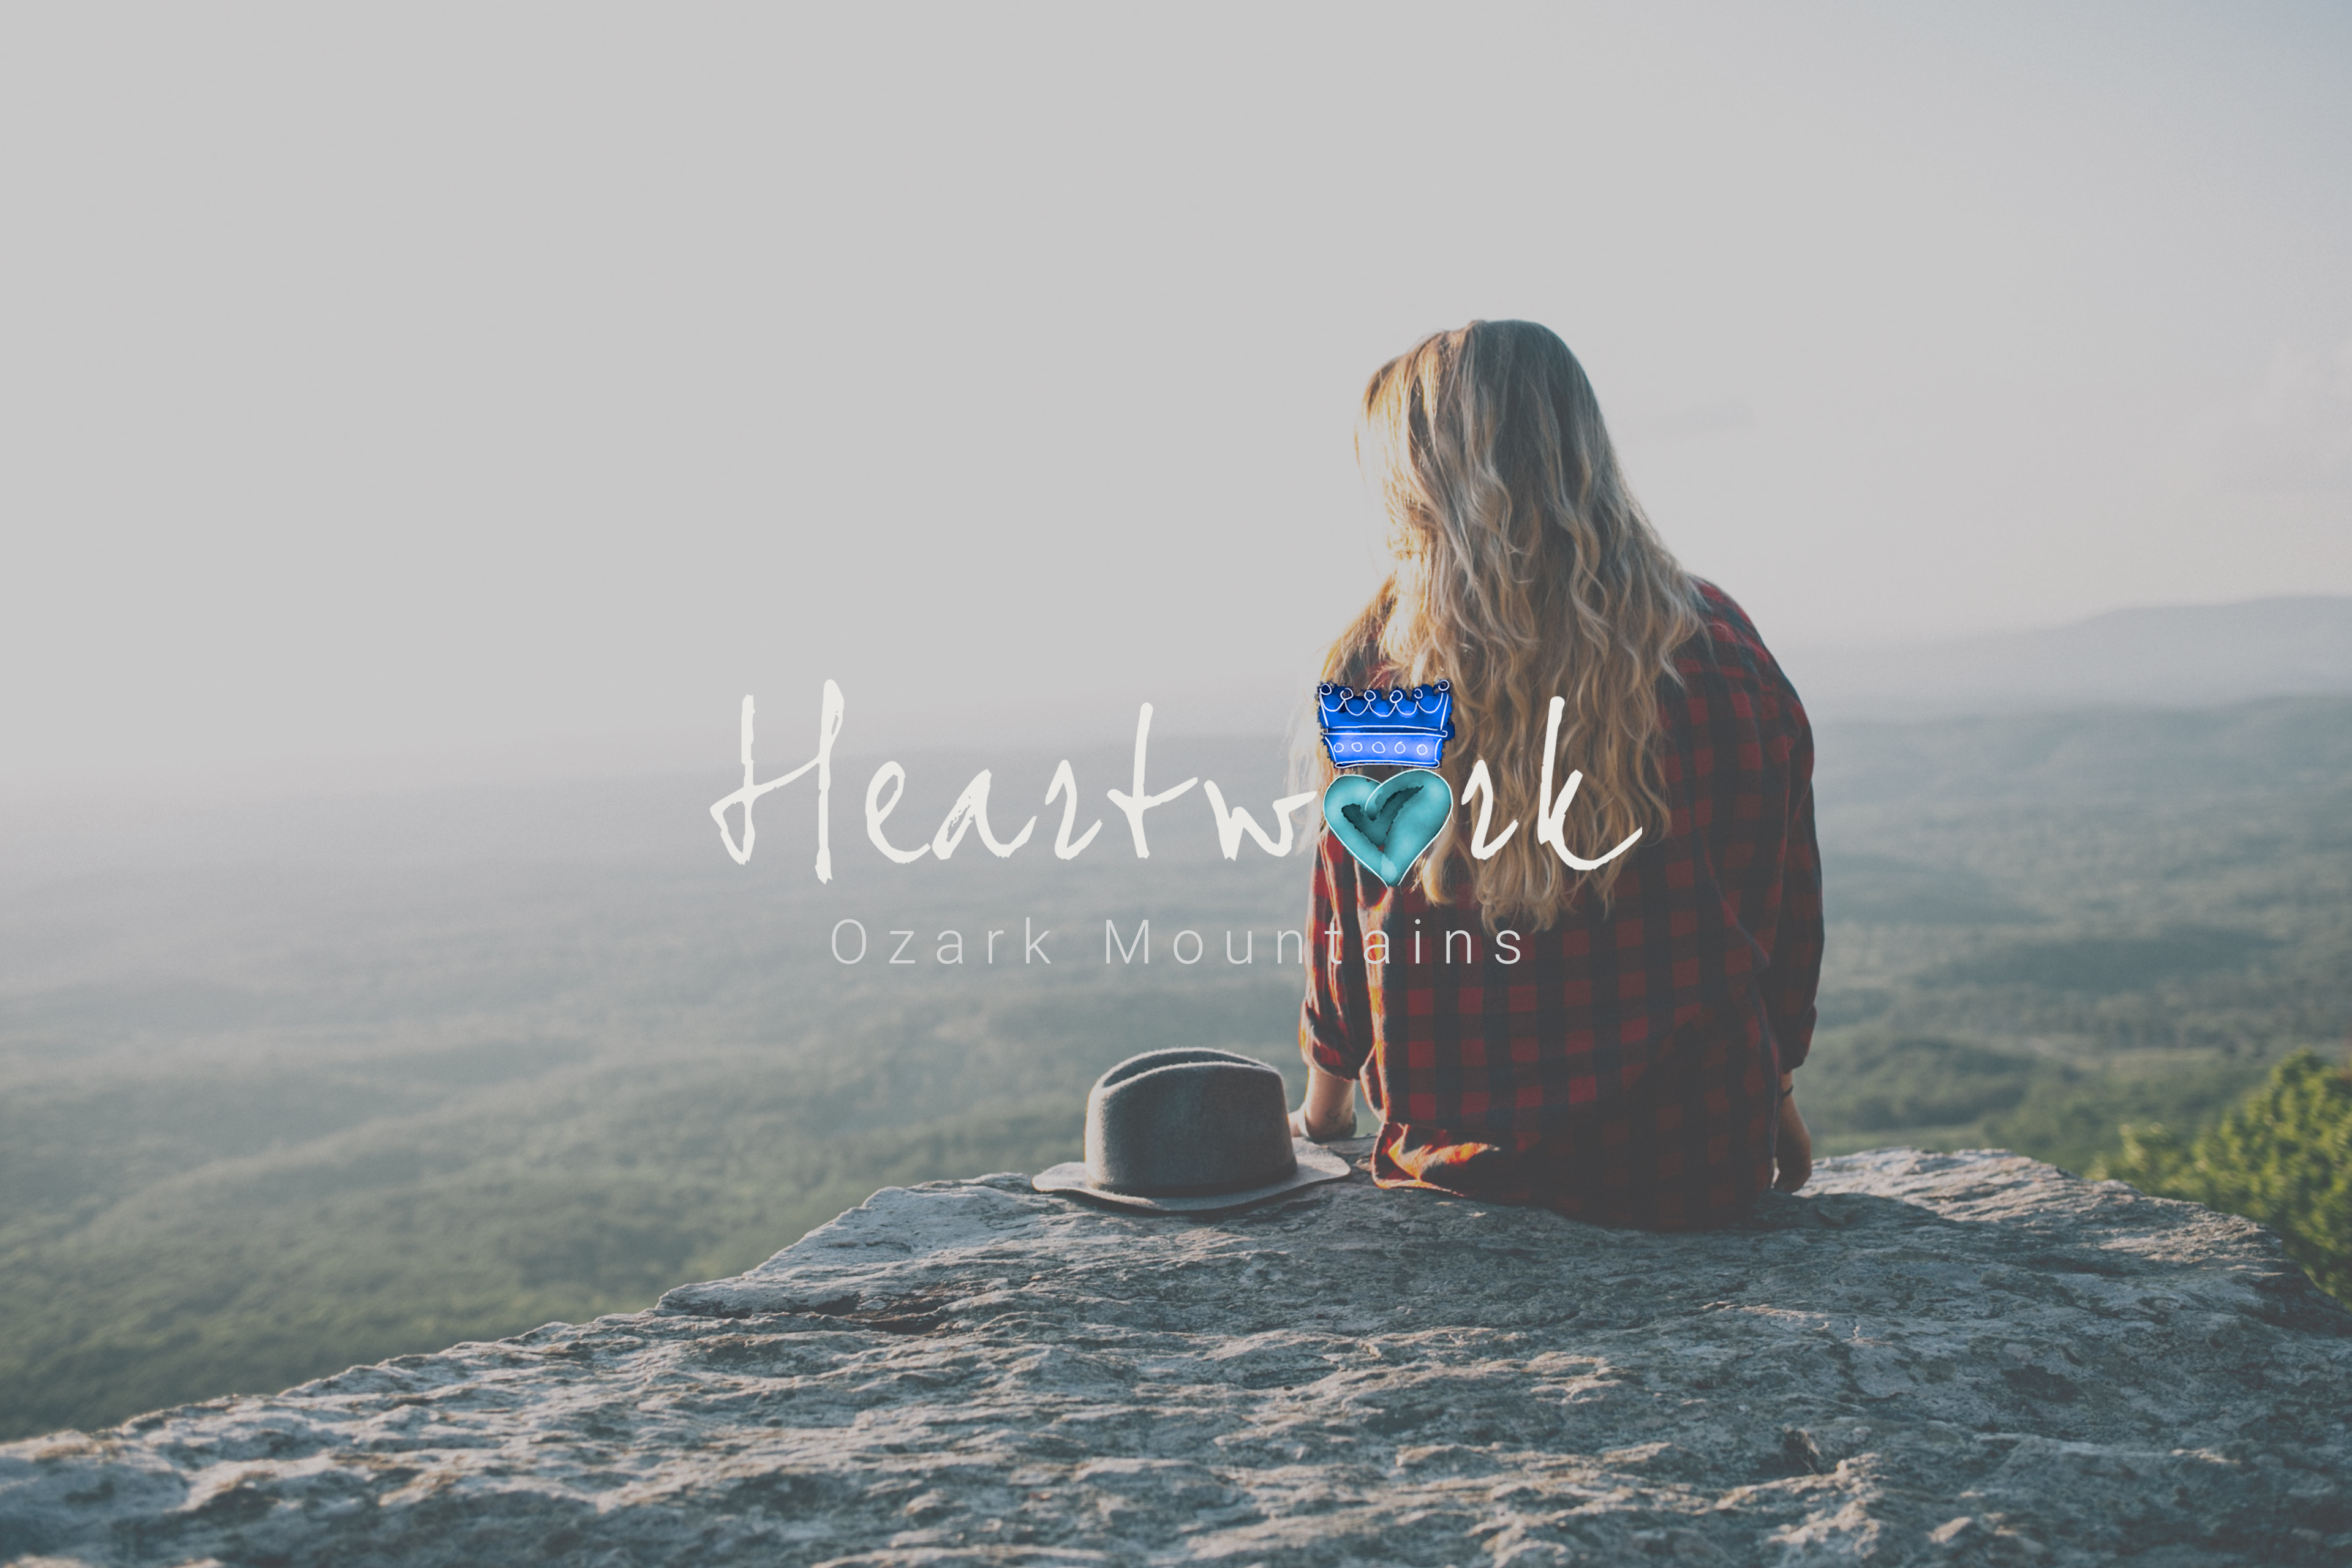 Heartwork Logo over picture of a woman sitting near the edge of a cliff